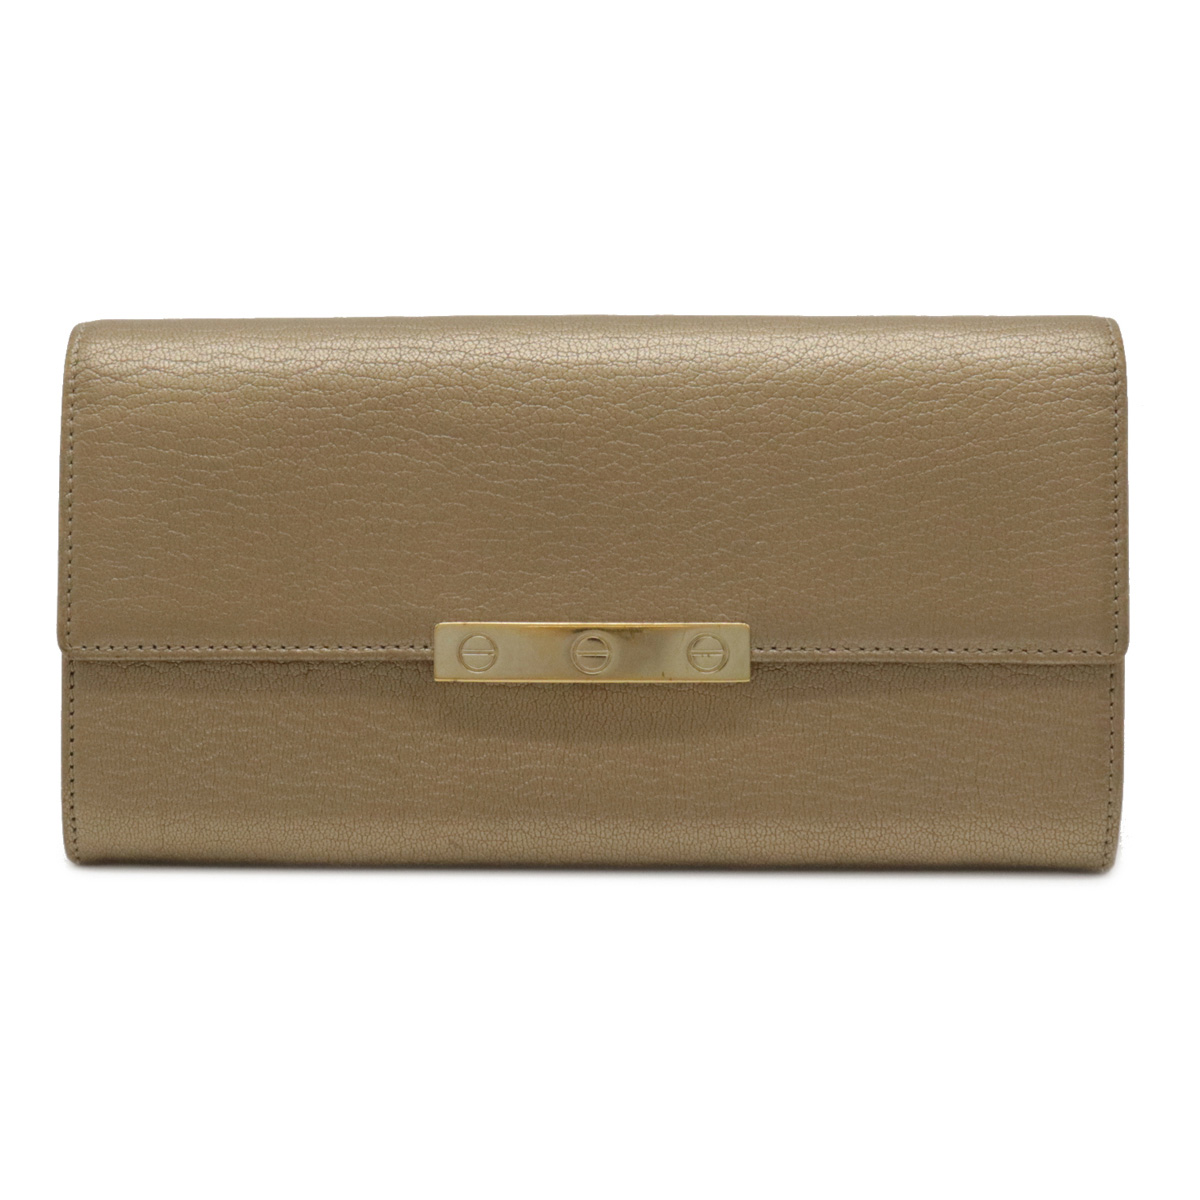 Cartier Love Collection International Wallet Two-Length Wallet Two-folded wa